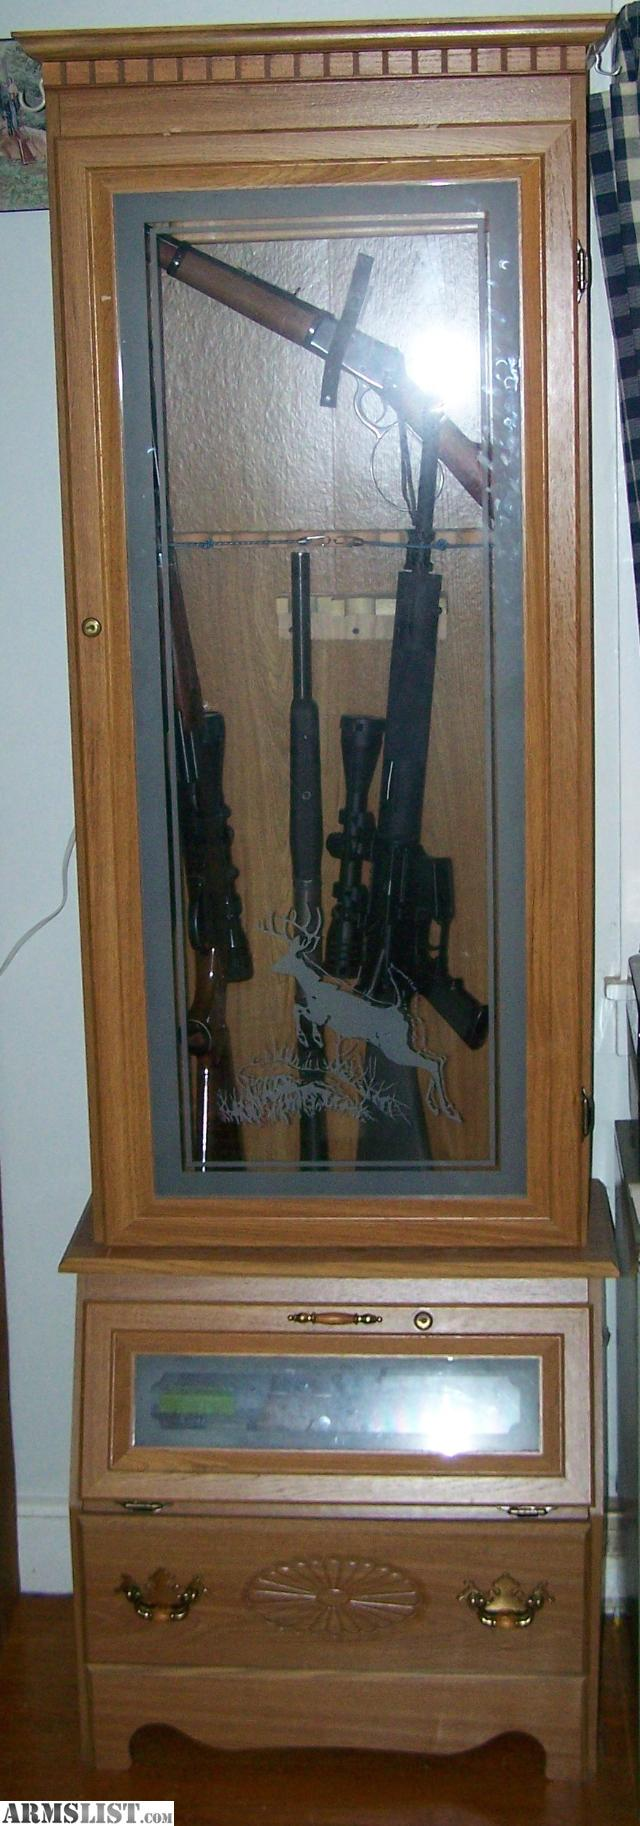 ARMSLIST For SaleTrade Wooden gun cabinet